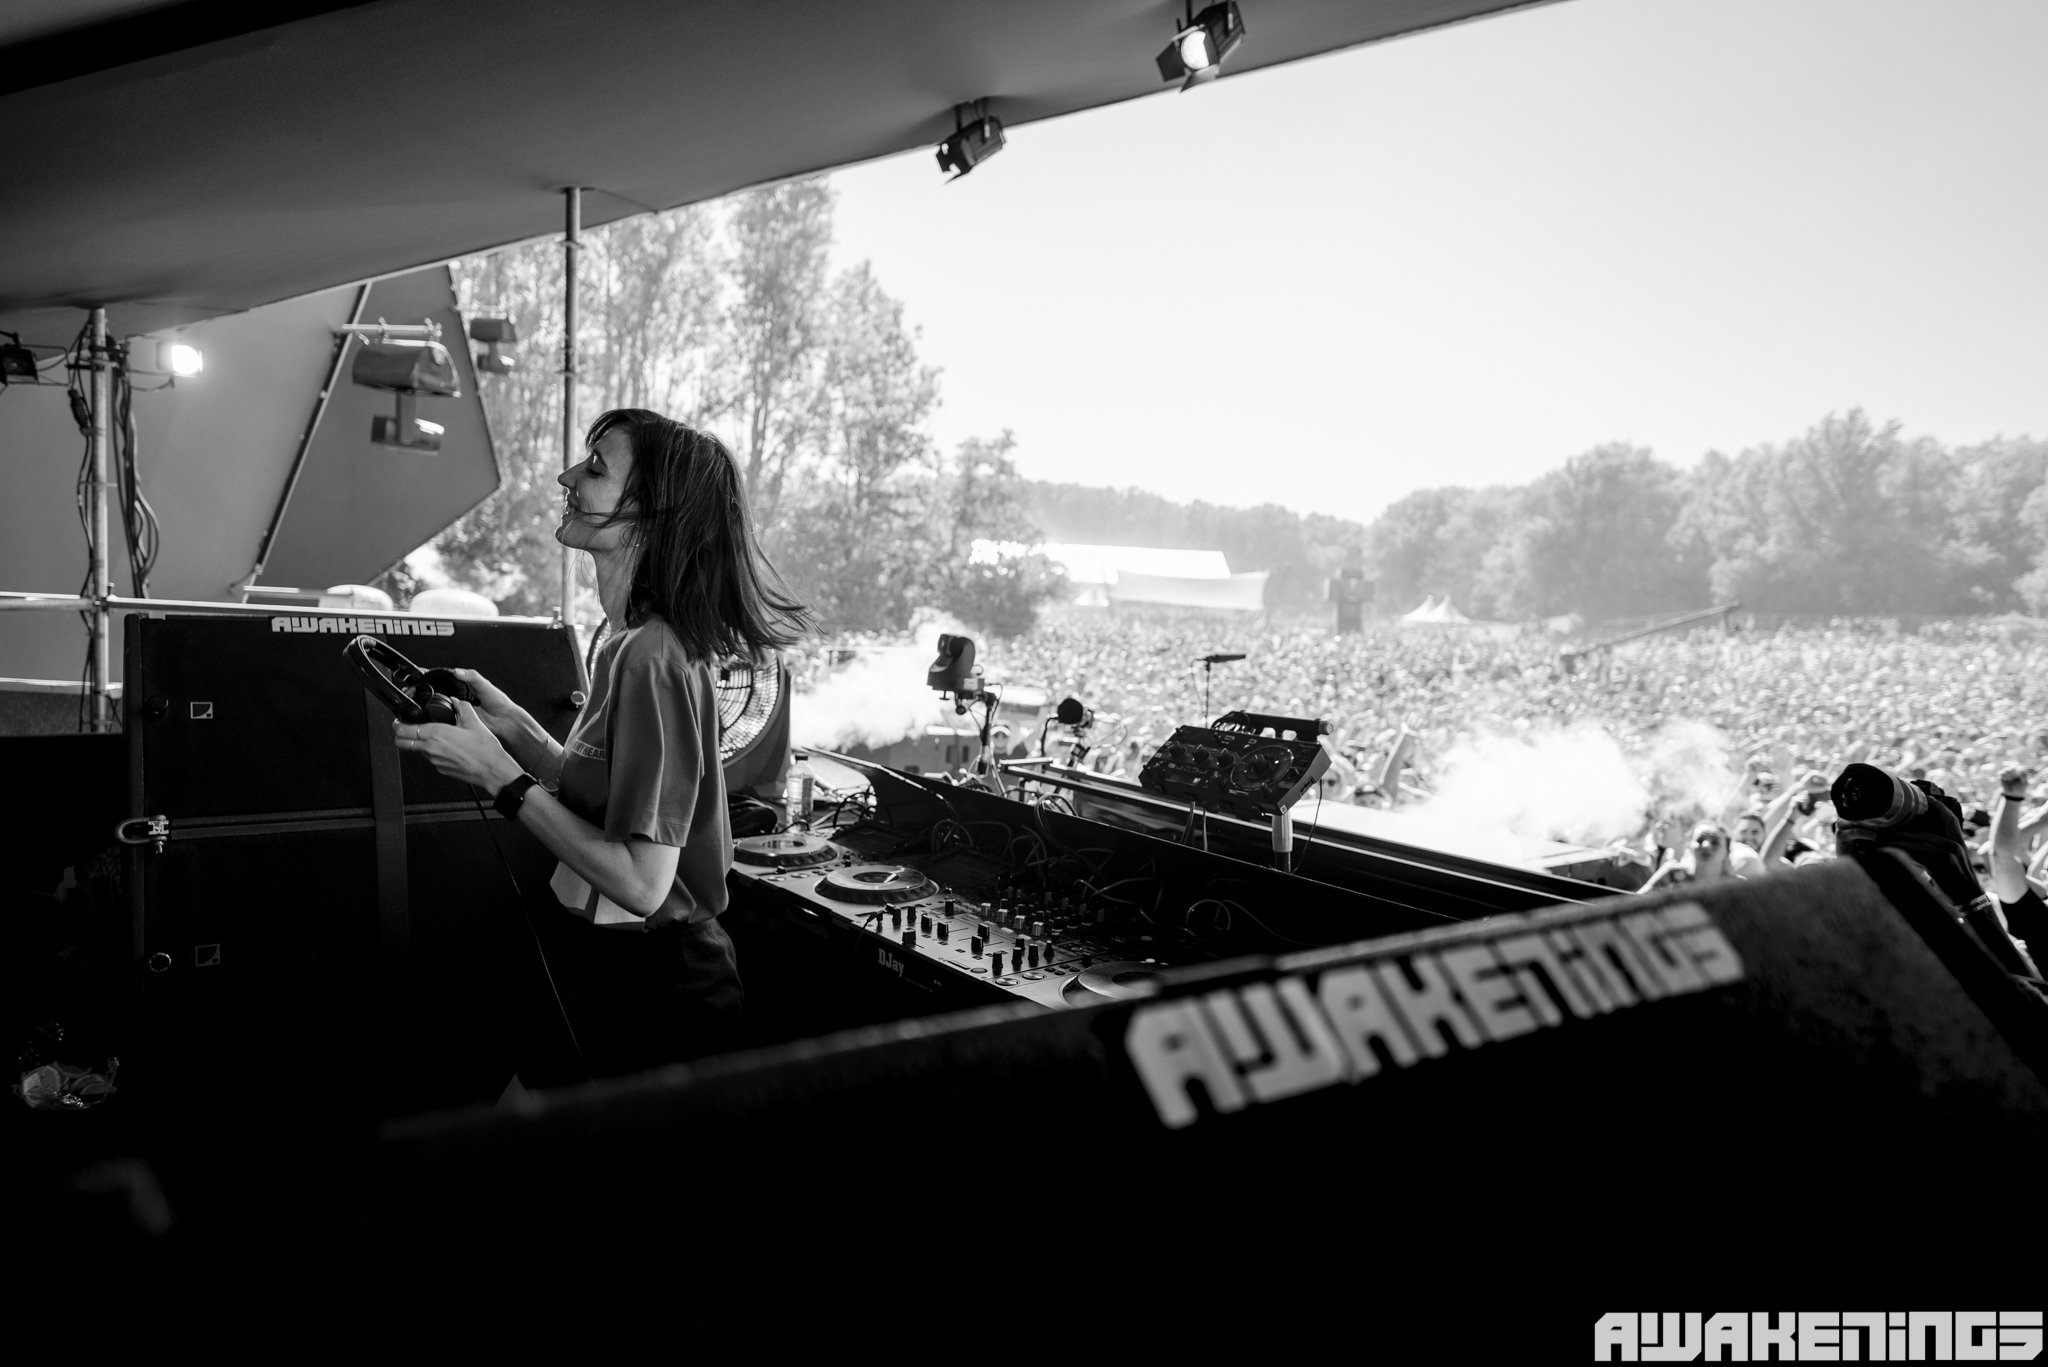 Amelie lens at Awakenings Festival 2018